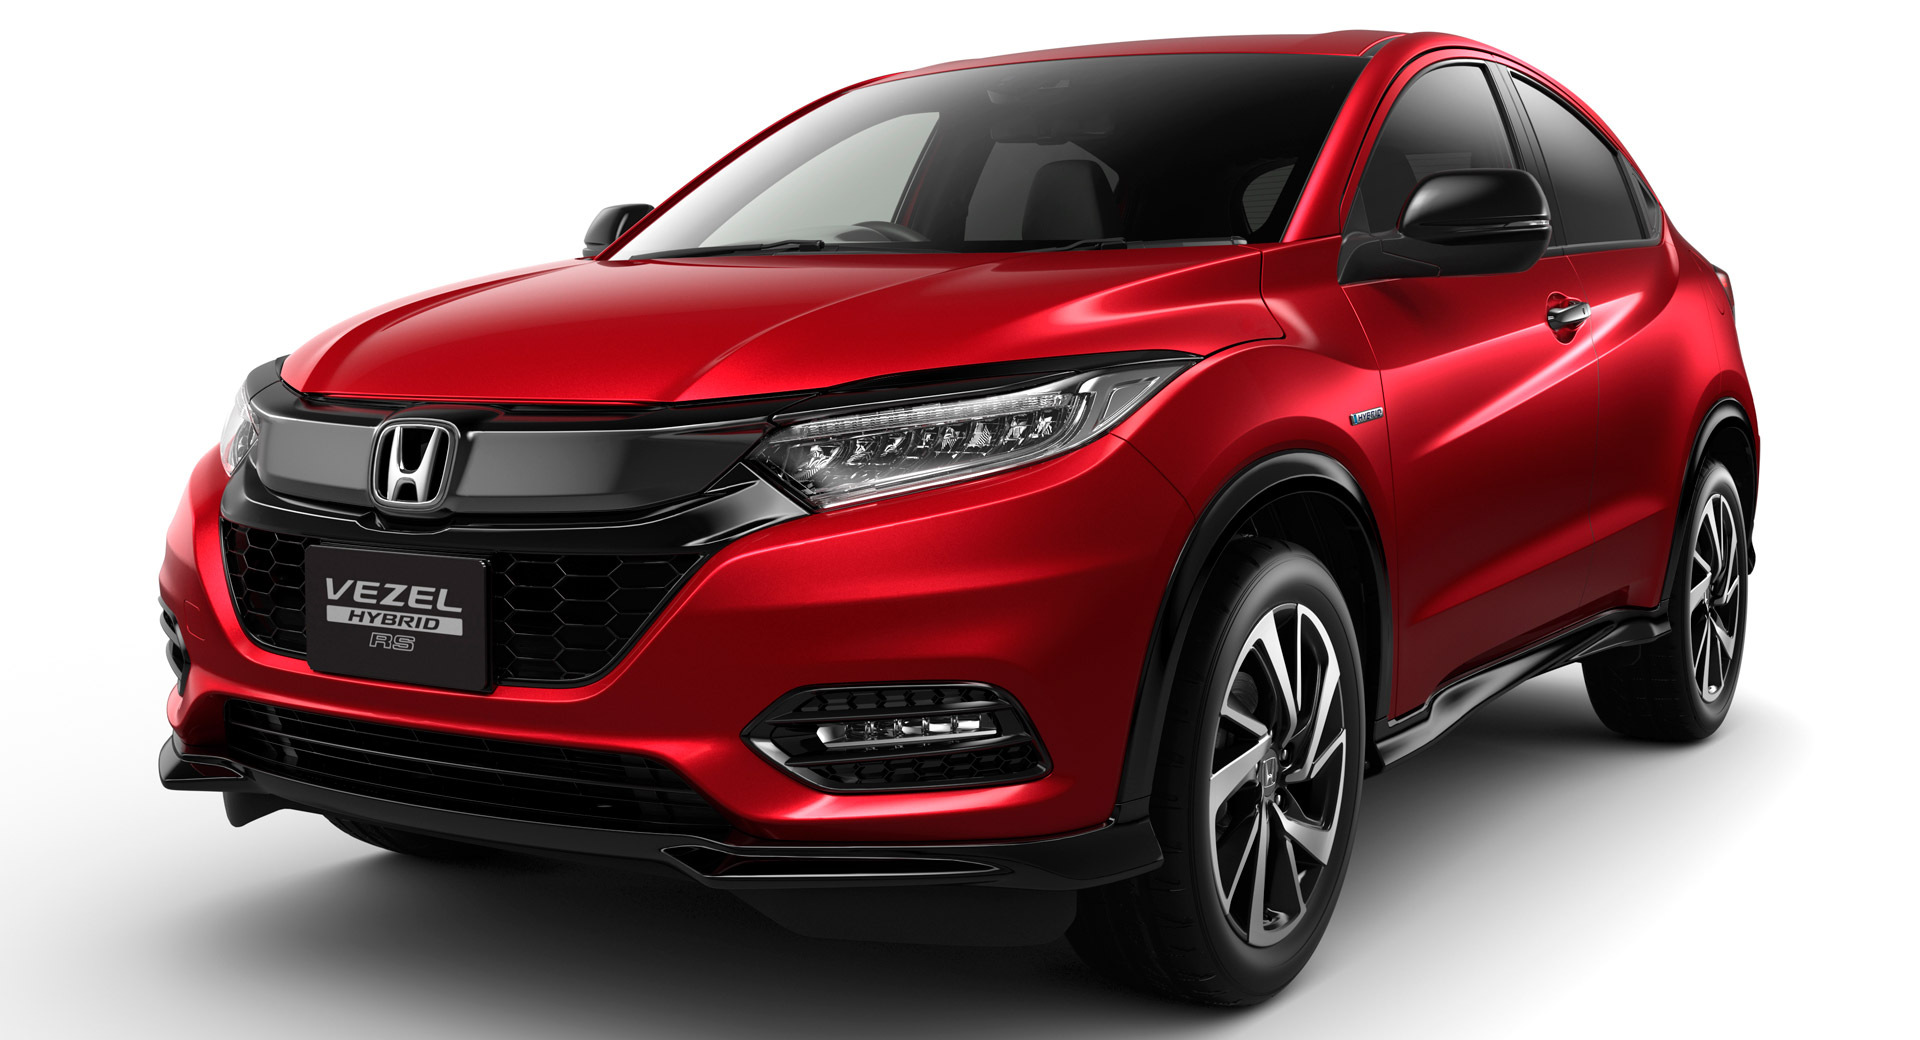 honda vezel relaunches in japan with a mild facelift carscoops. Black Bedroom Furniture Sets. Home Design Ideas